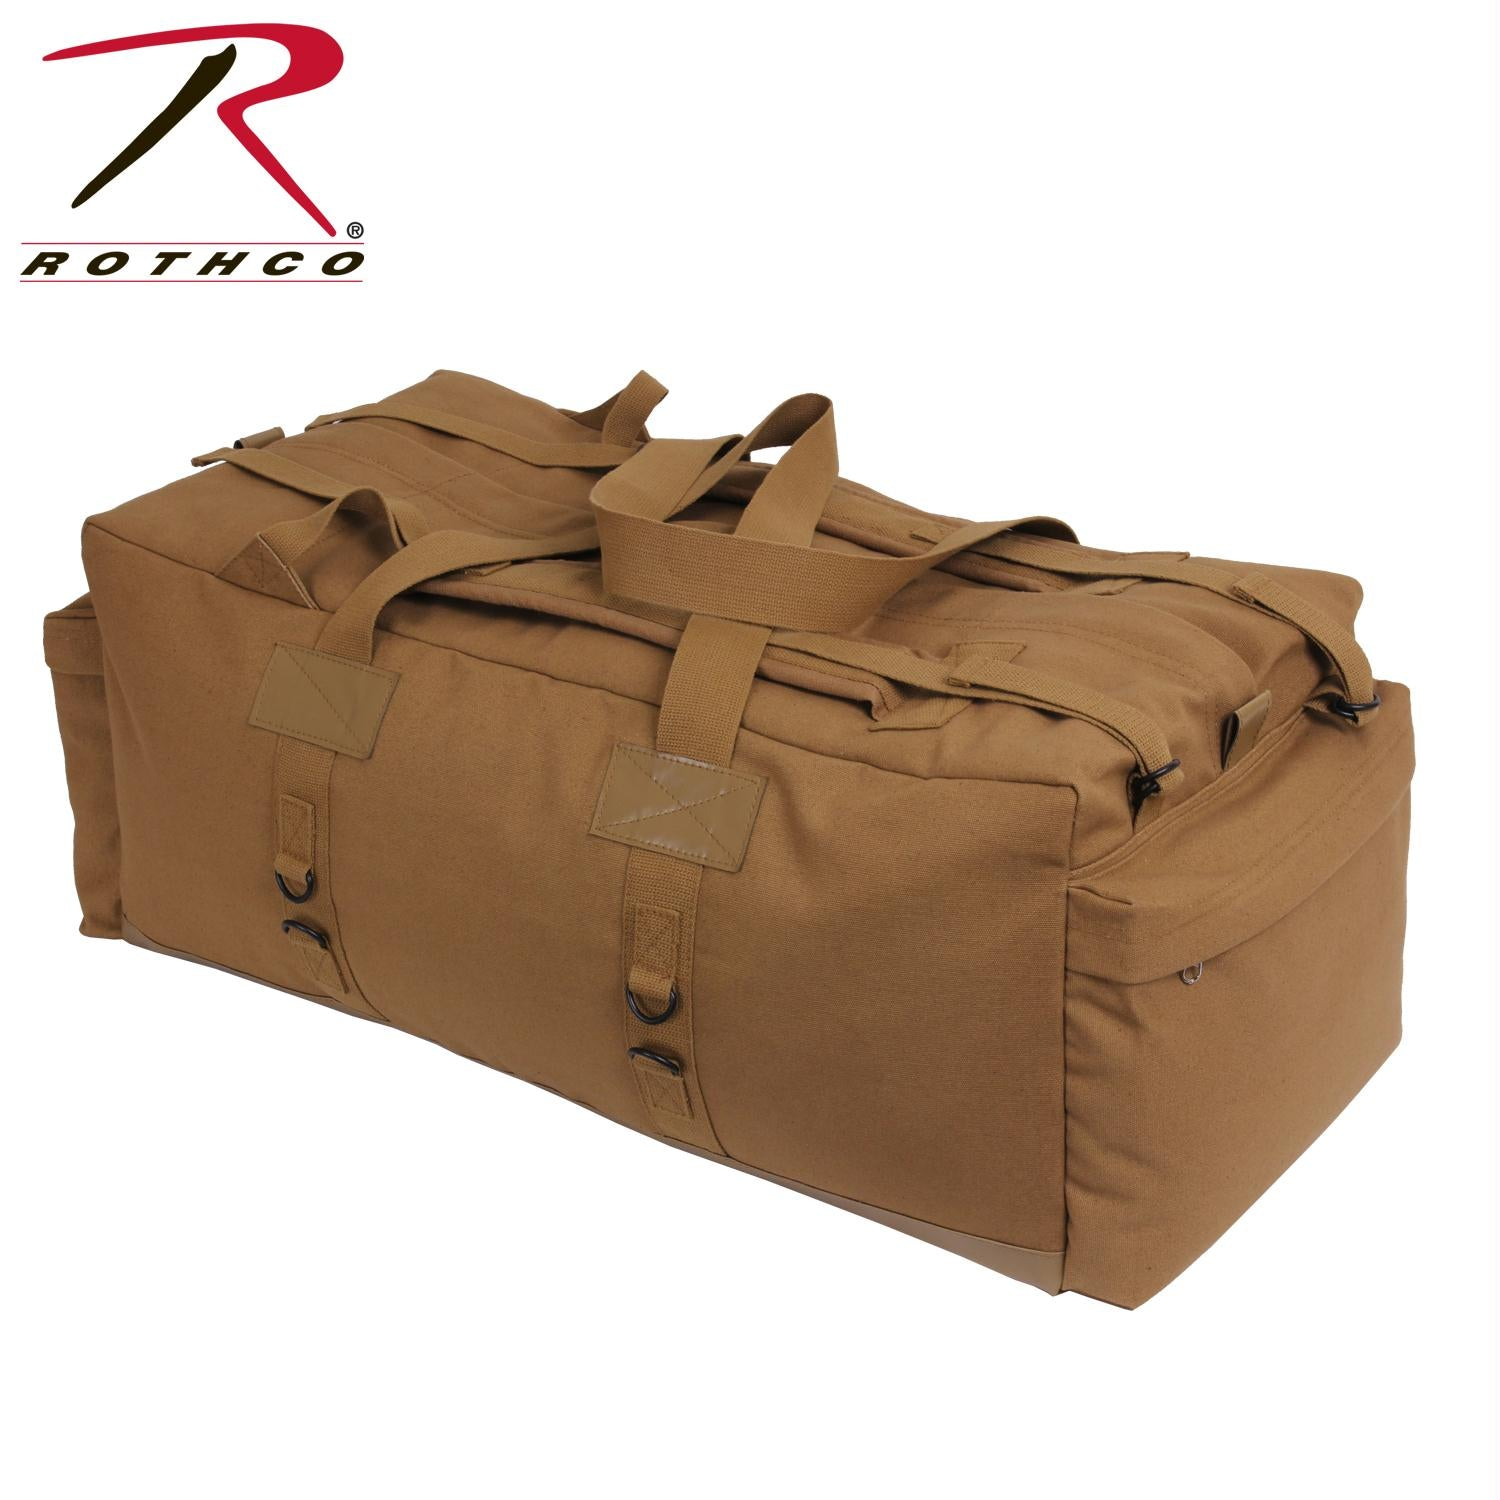 Rothco Mossad Tactical Duffle Bag - Wholesale Army Navy 71dd1fd1d2656